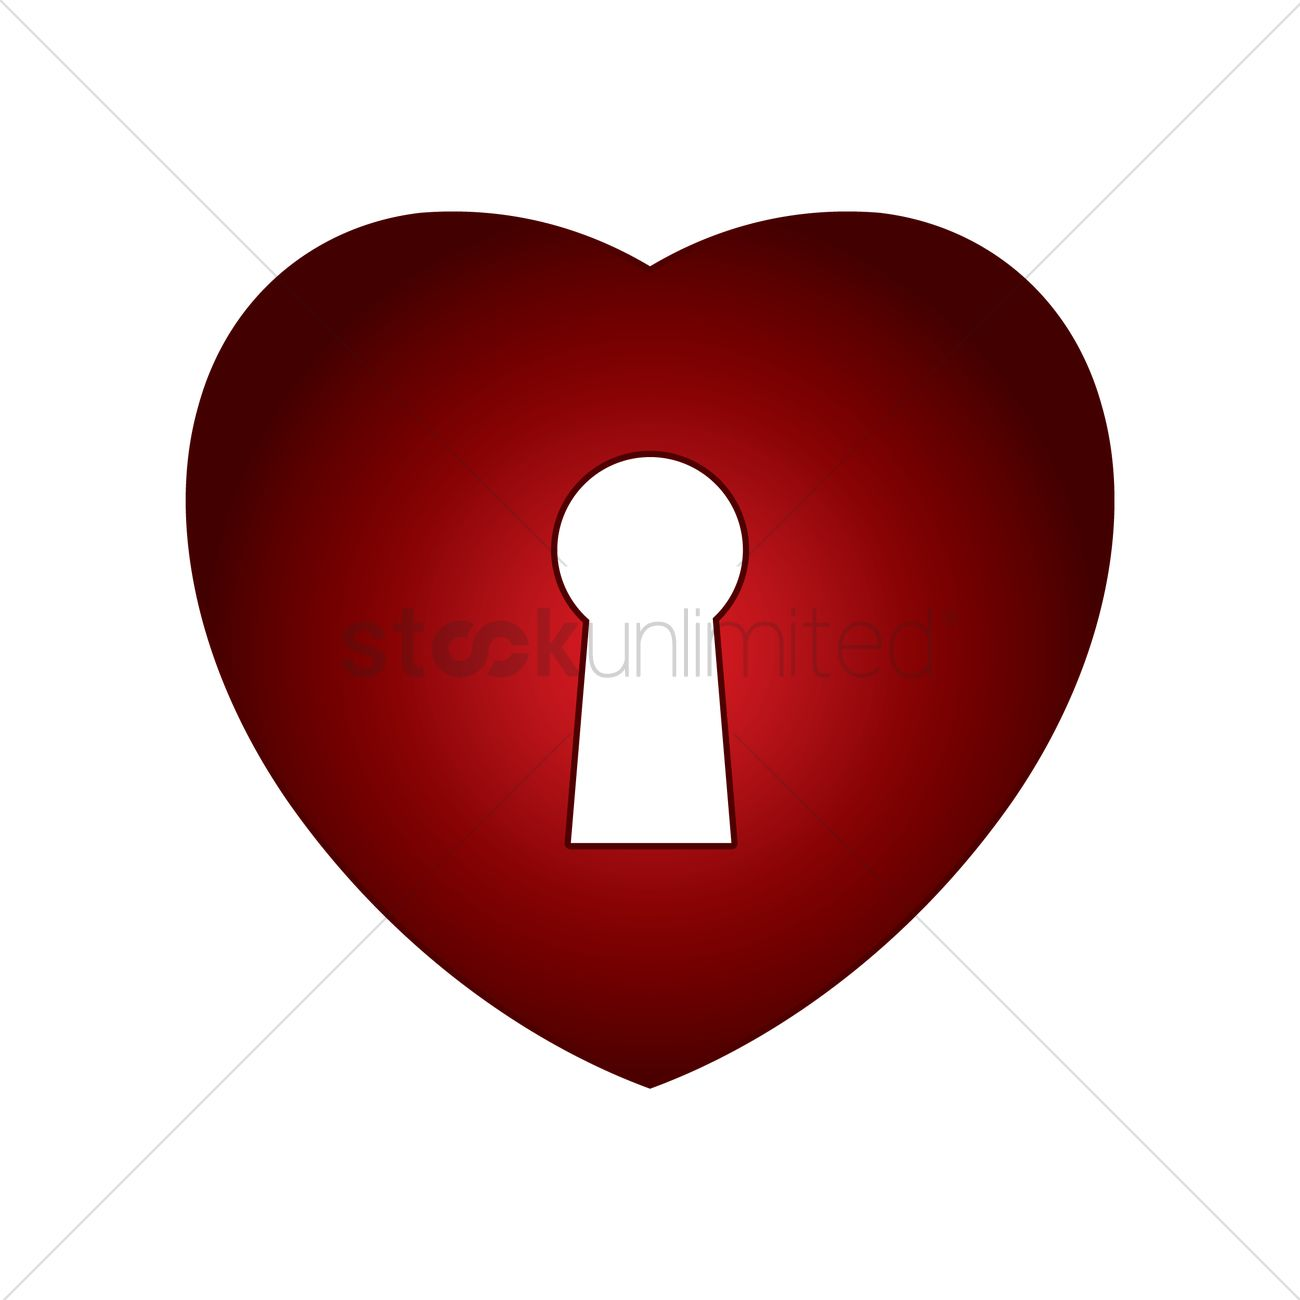 Heart With Key Hole Vector Image 1478190 Stockunlimited